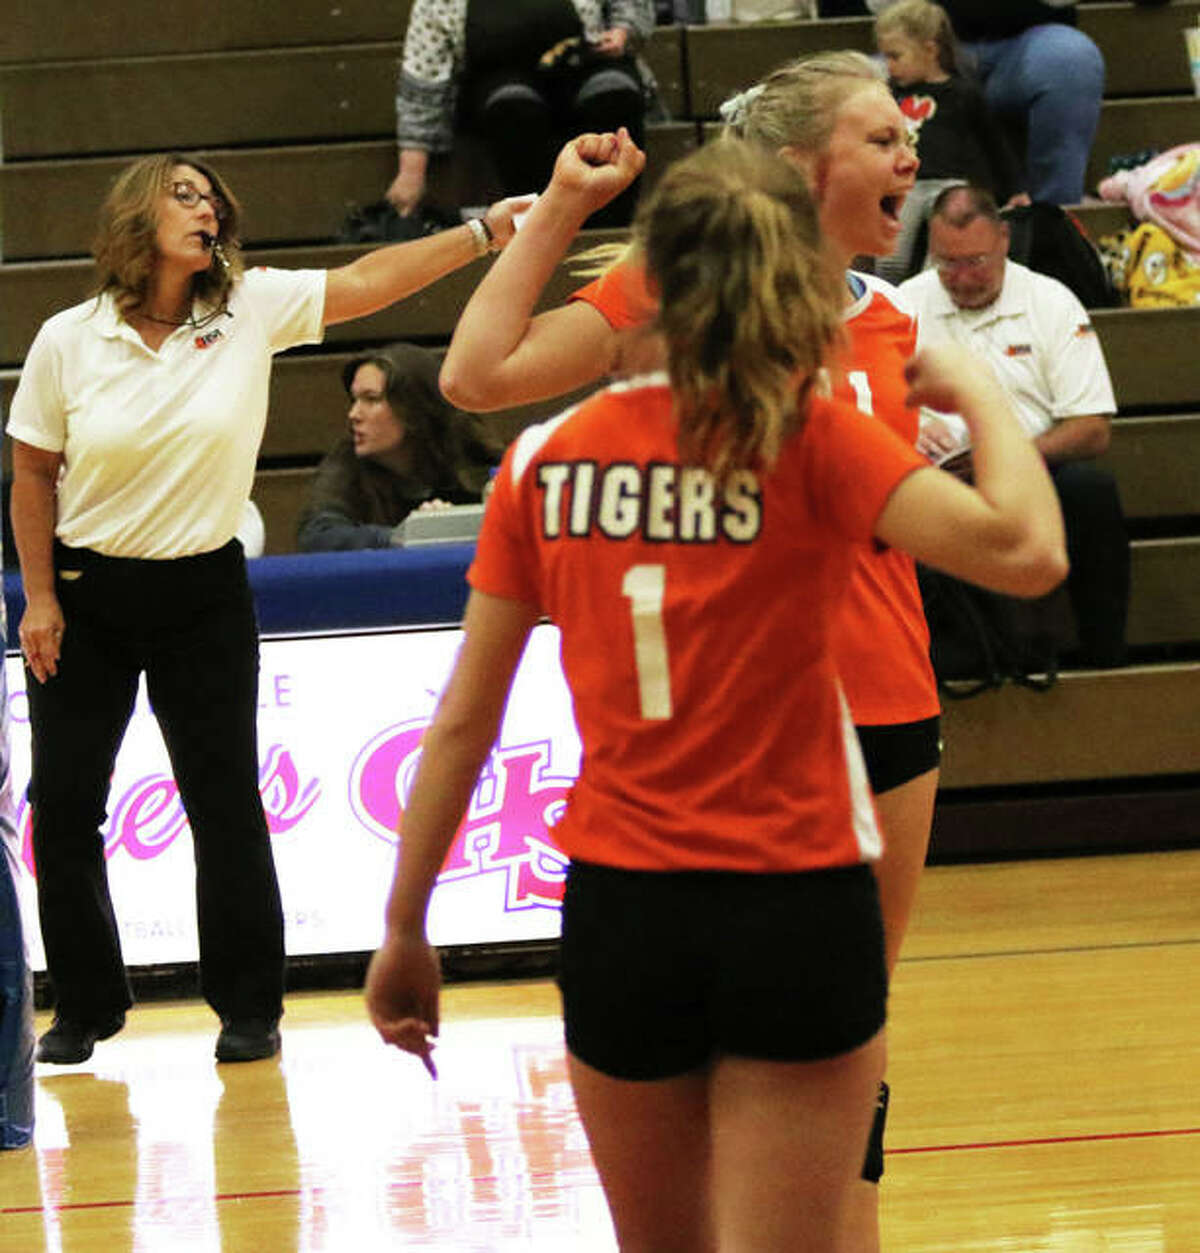 Greenfield's Kersty Gibbs celebrates a point with teammate Jessa Vetter (1) during an Oct. 5 match at the Carlinville Tourney. Gibbs had 10 kills to lead the Tigers to a win over Calhoun on Thursday at the Carrollton Class 1A Regional.